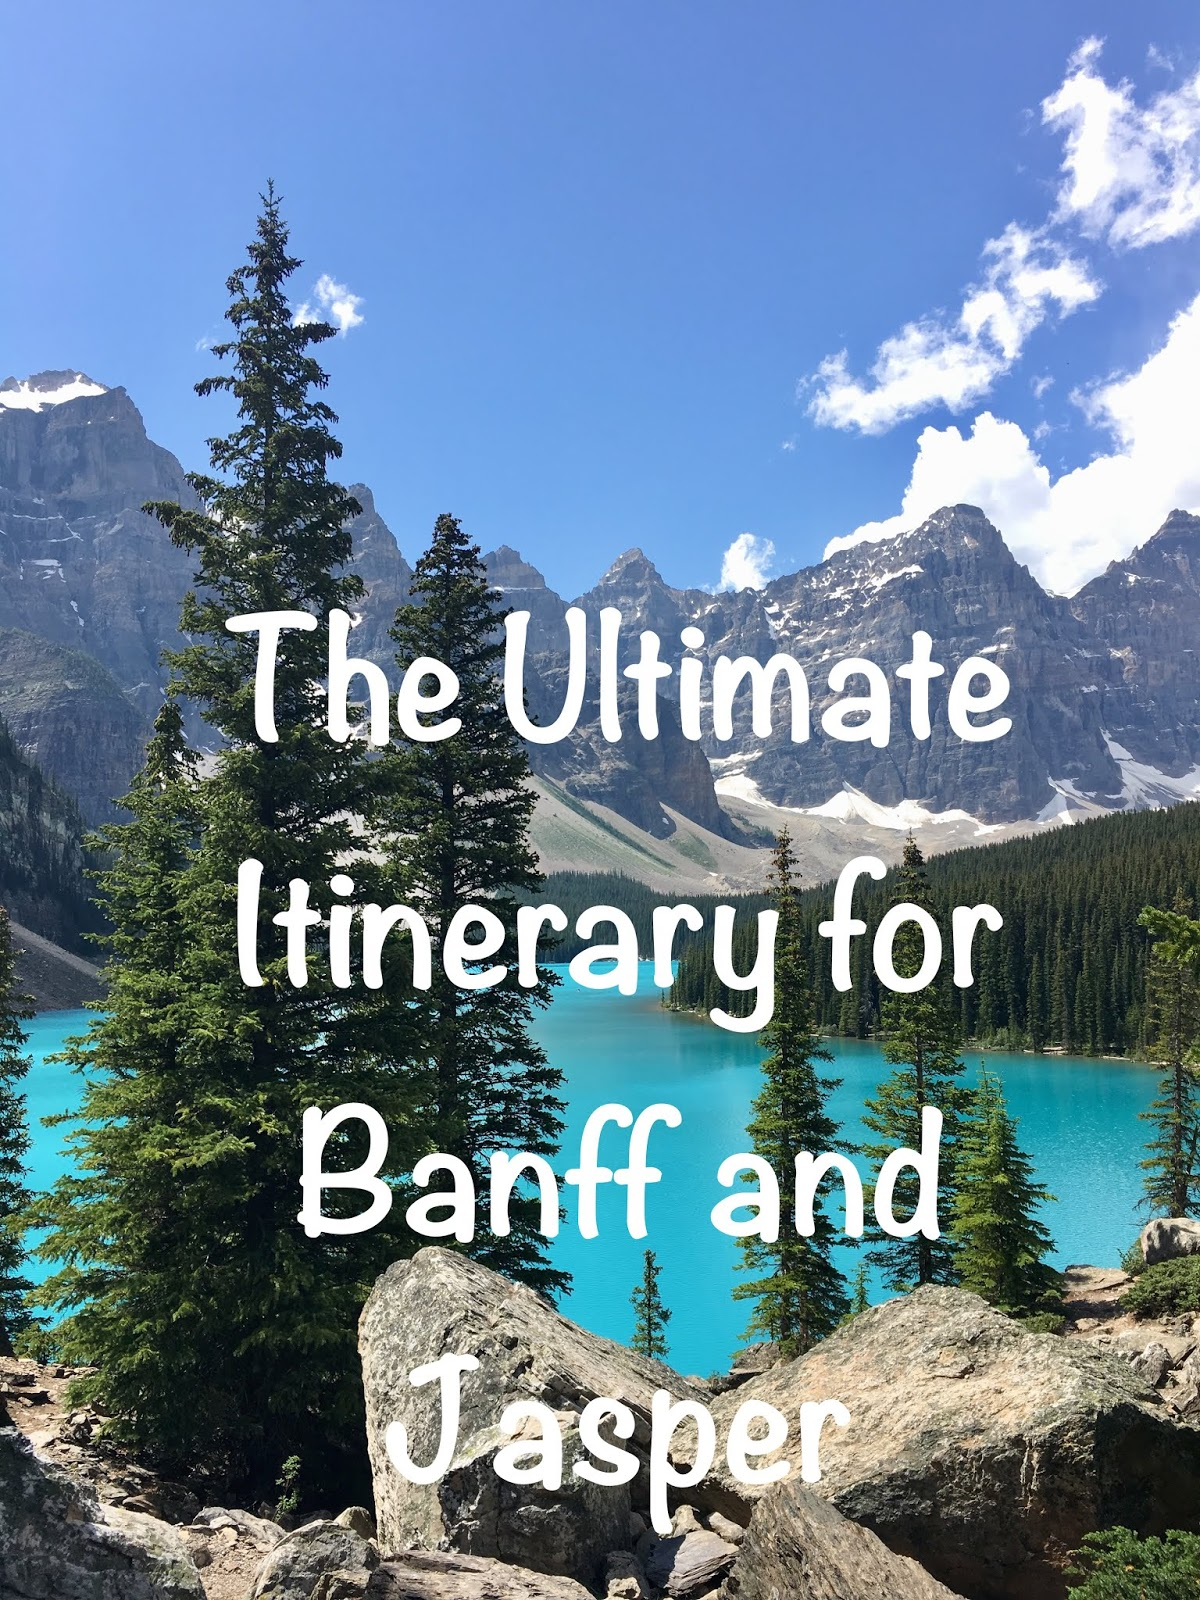 The Ultimate Itinerary for a trip to Banff and Jasper | Trip to Banff | 9 Days in Banff | What To Do On Your Trip to Banff | The Perfect Itinerary for Your Trip to Banff